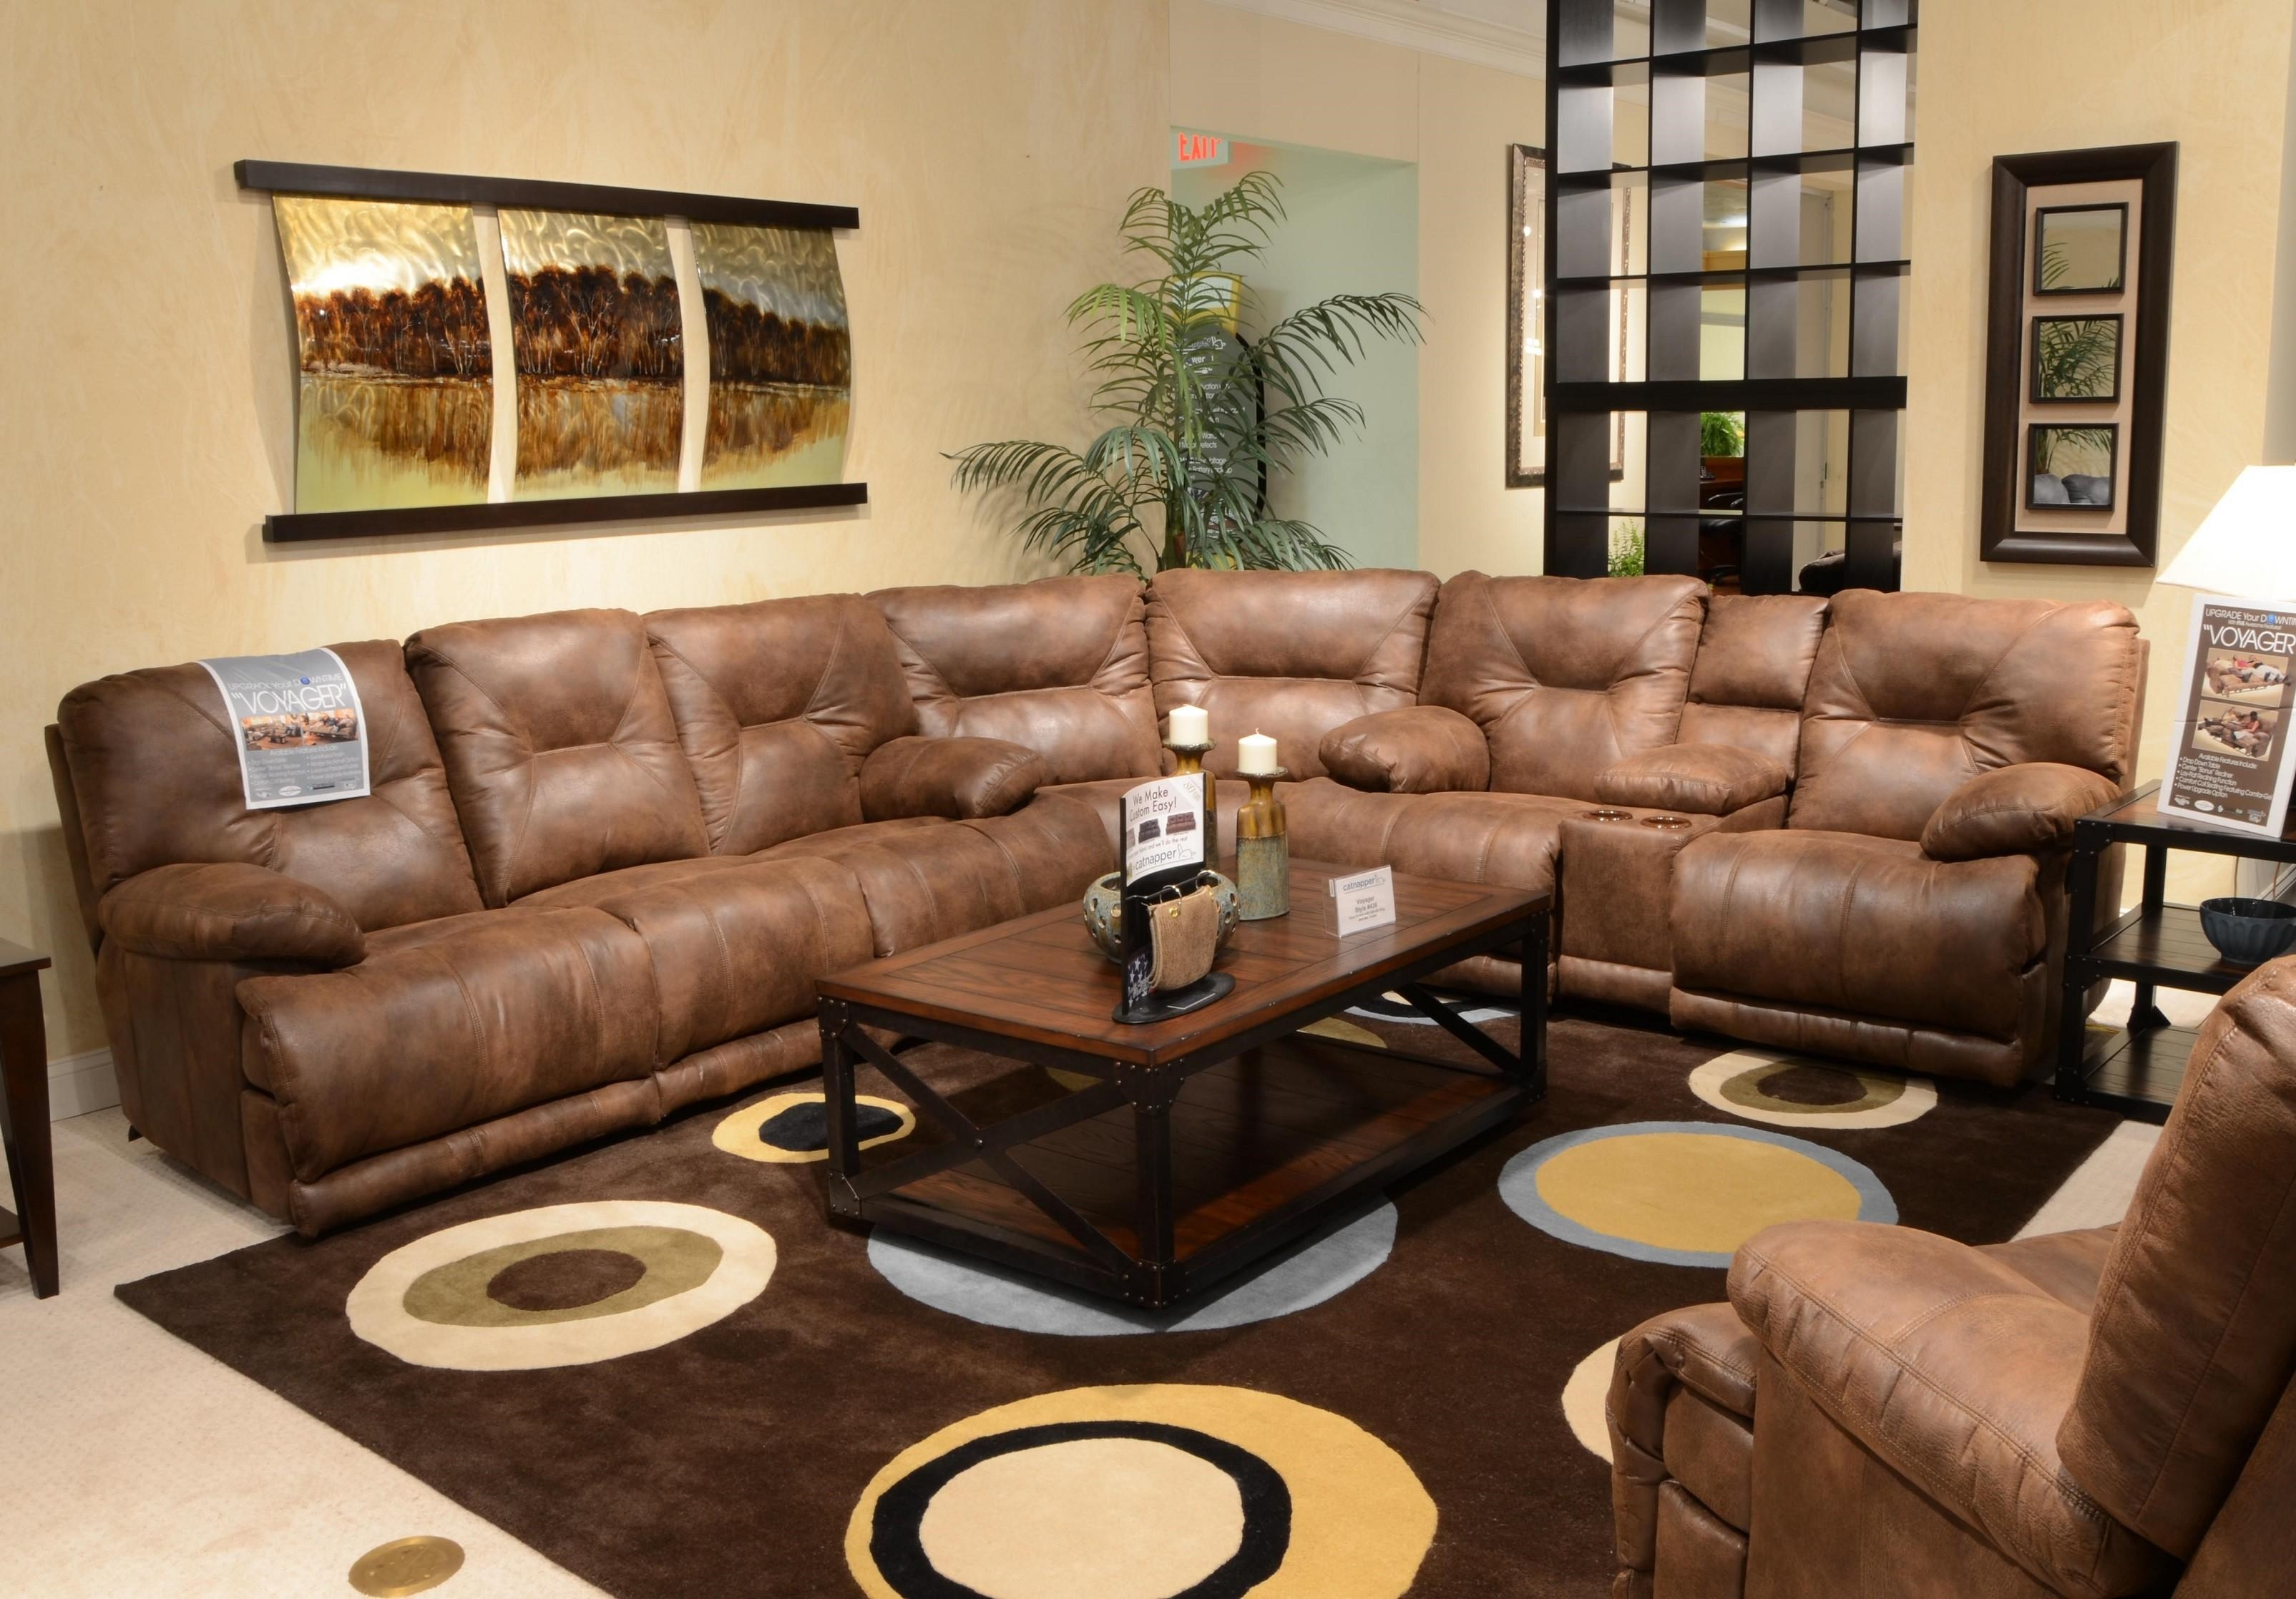 Sectional Sleeper Sofa With Recliners | Sofa Gallery | Kengire Throughout Sectional With Recliner And Sleeper (Image 12 of 20)